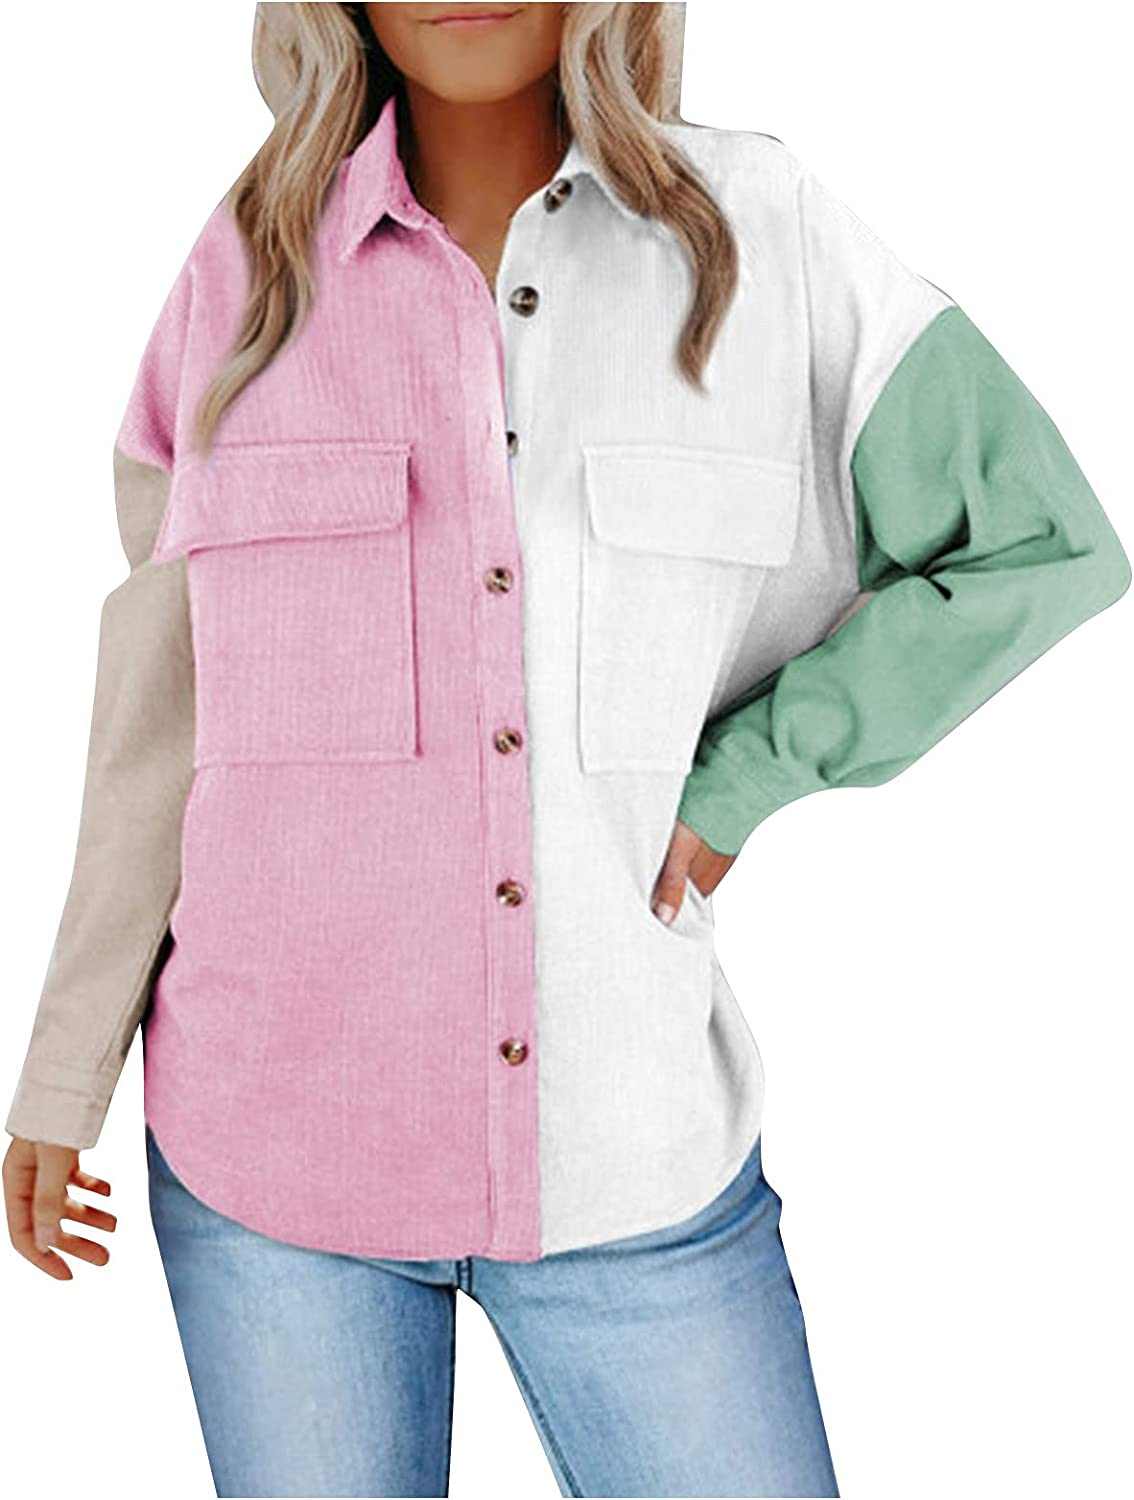 Womens Corduroy Shirts Casual Long Sleeve Button Down Loose Lapels Tops Fashion Patchwork Coat Outwear